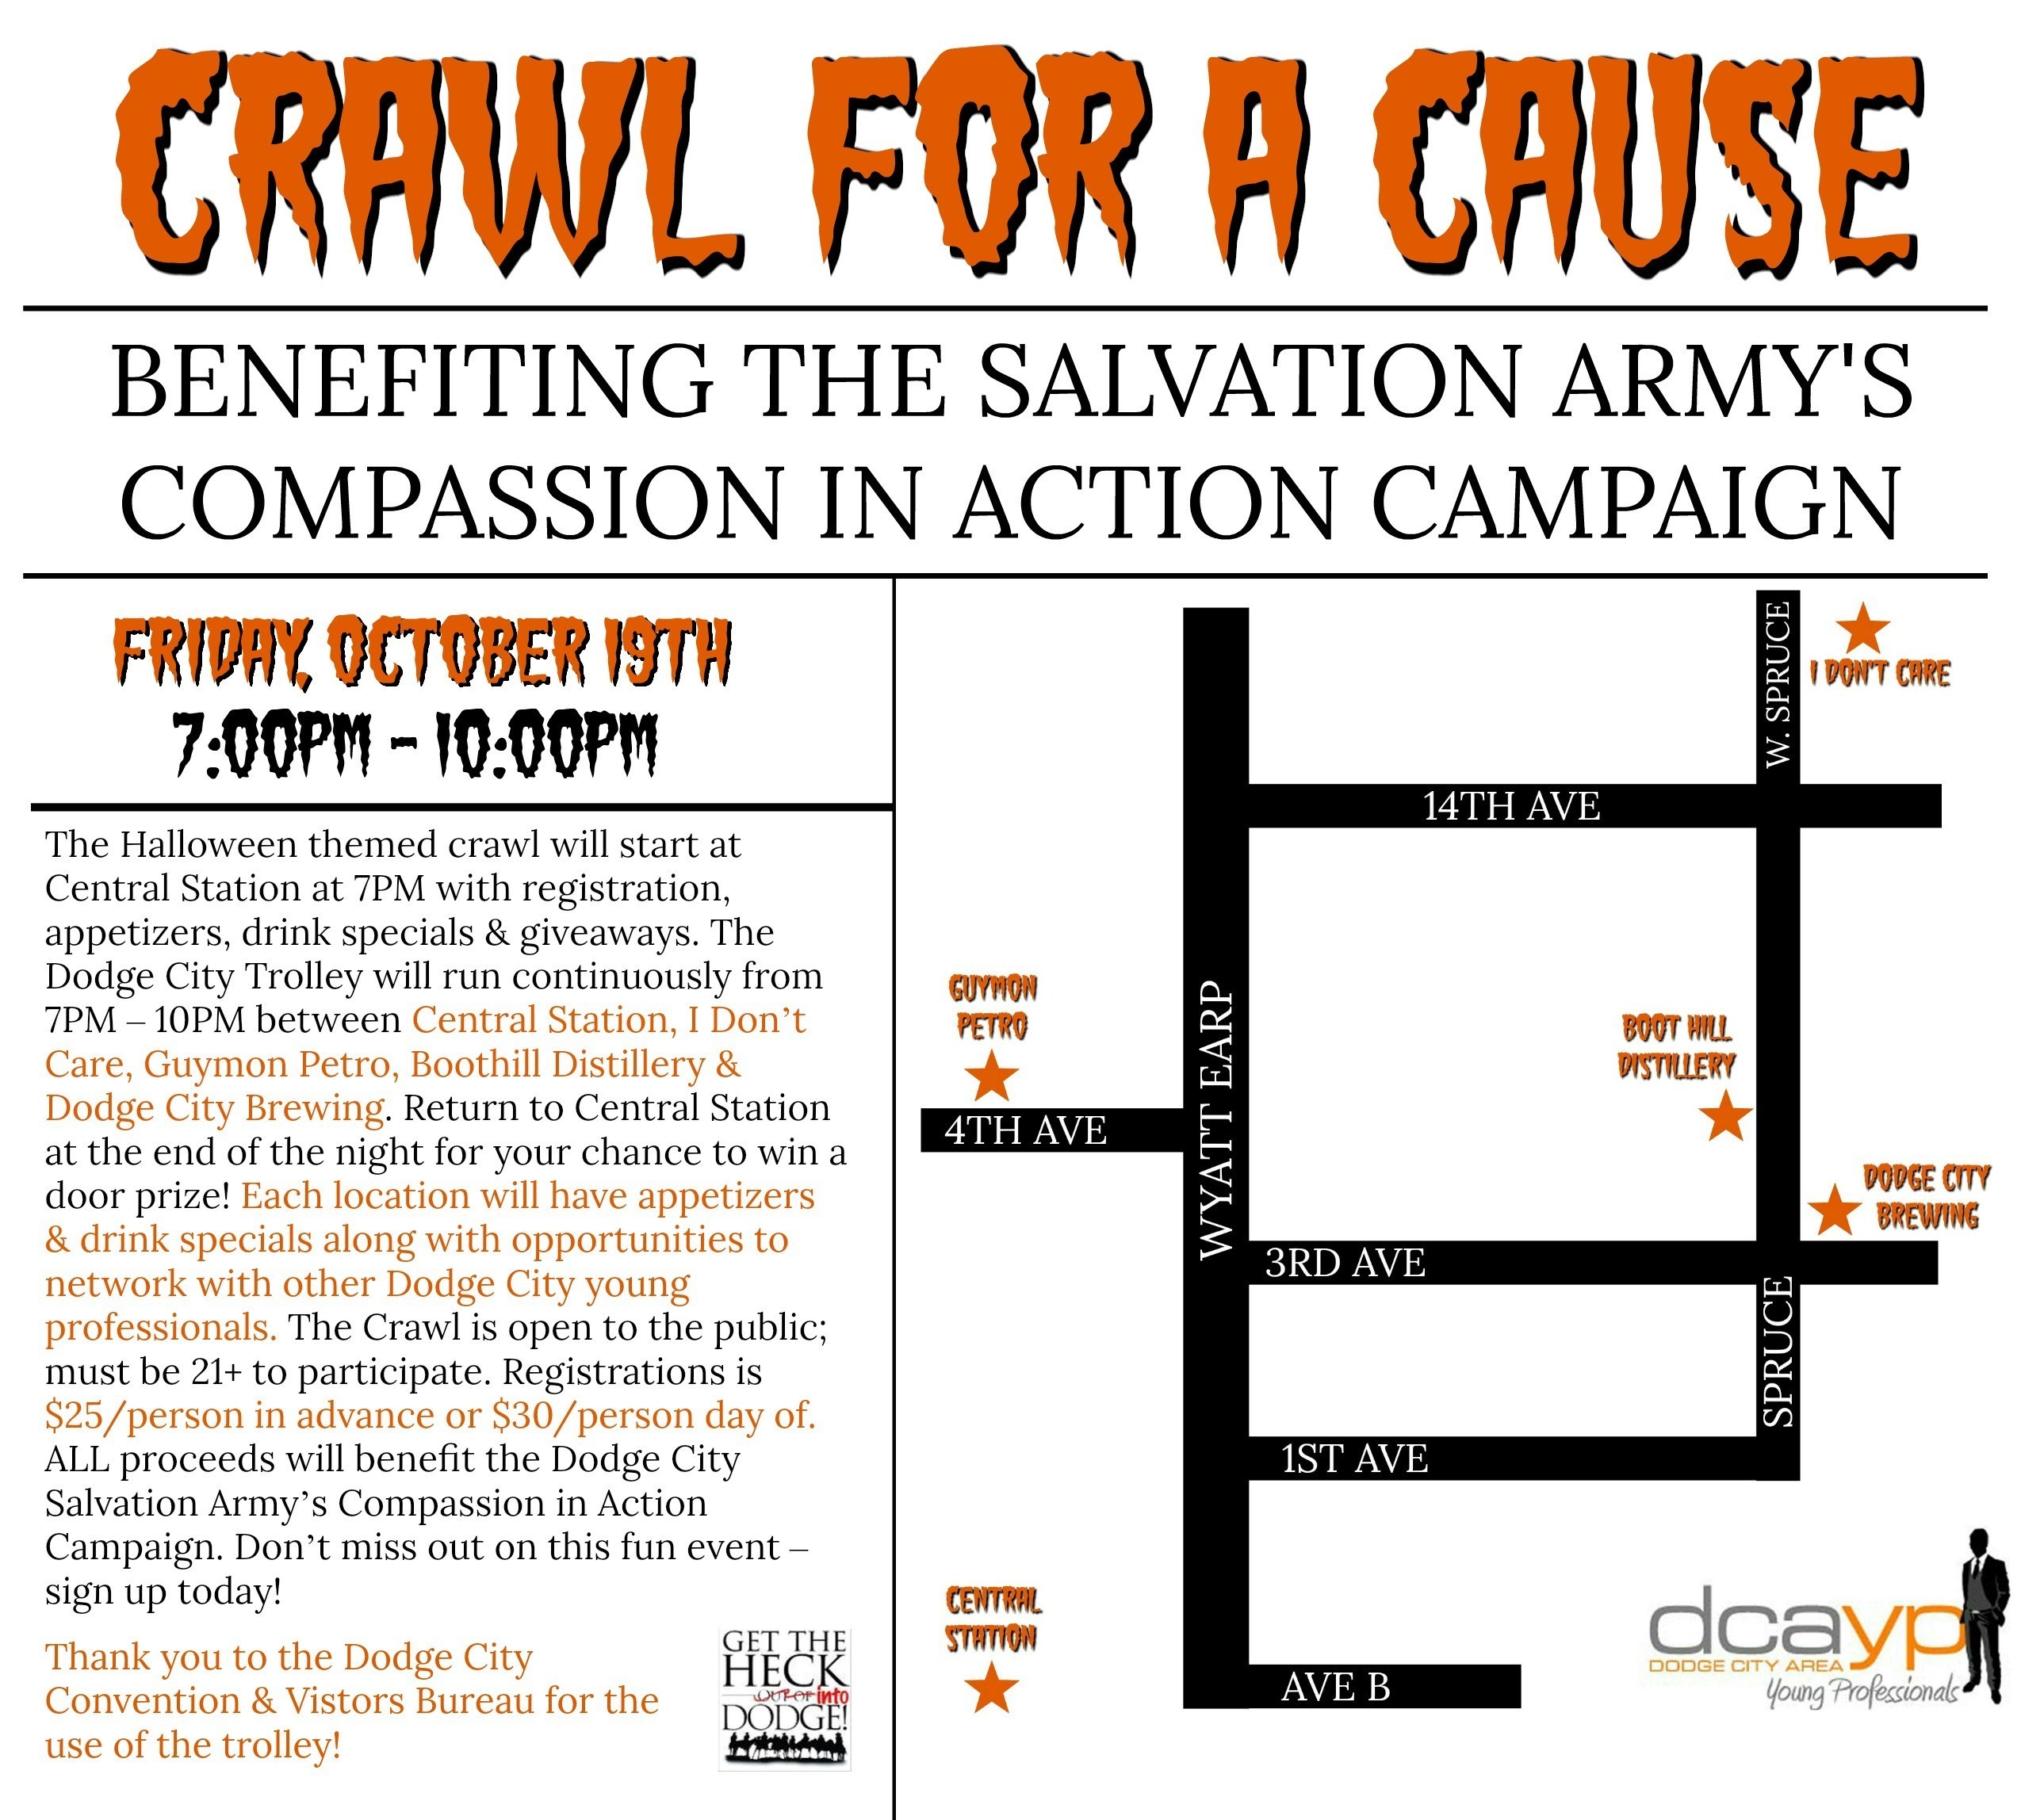 Salvation Army Crawl for a Cause Flyer